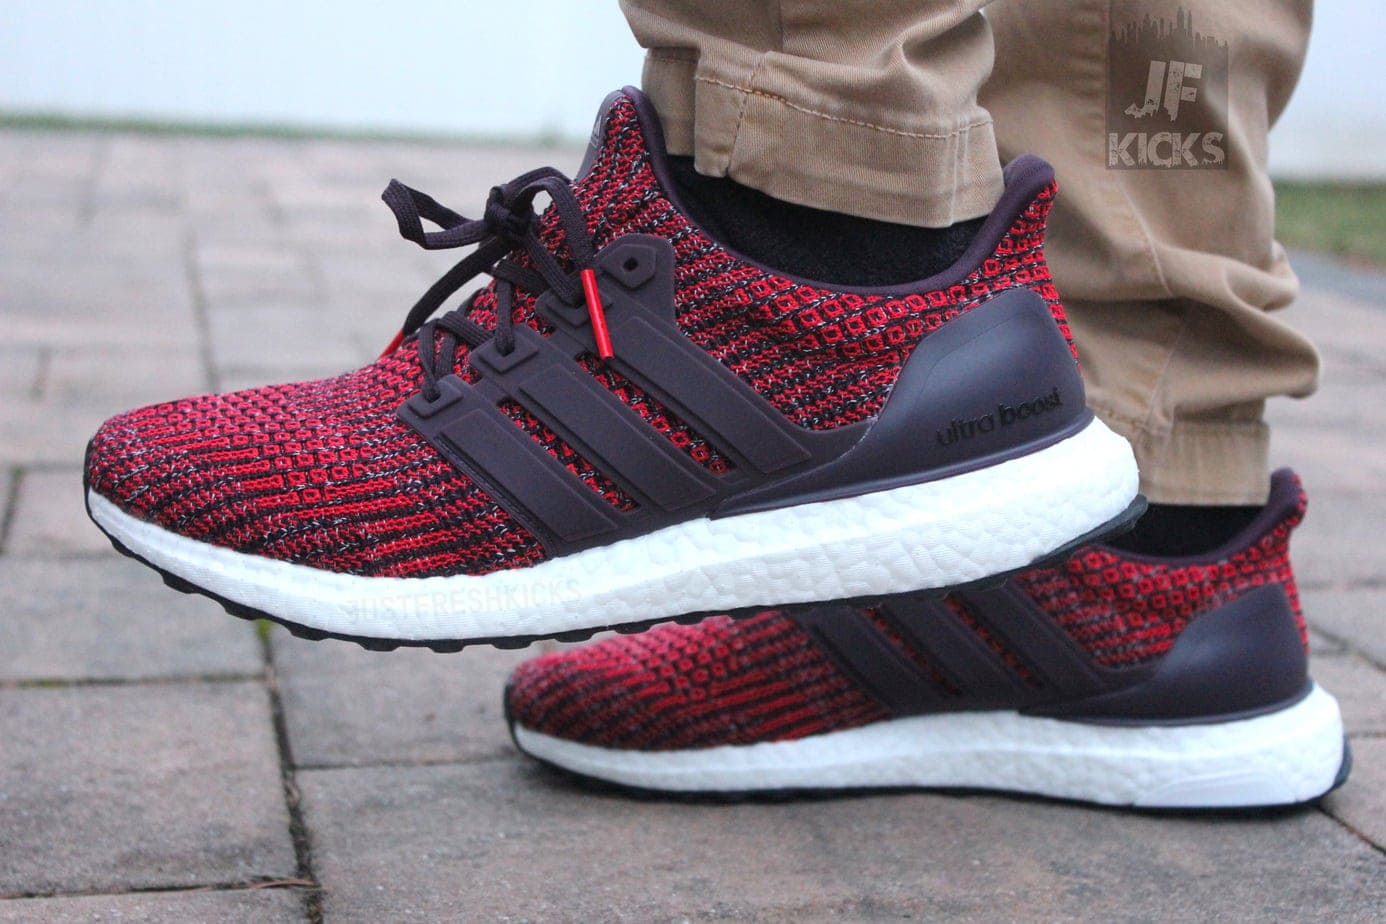 Adidas Ultra Boost 4.0 Ash Pearl Reaction, Review, & On Feet How I